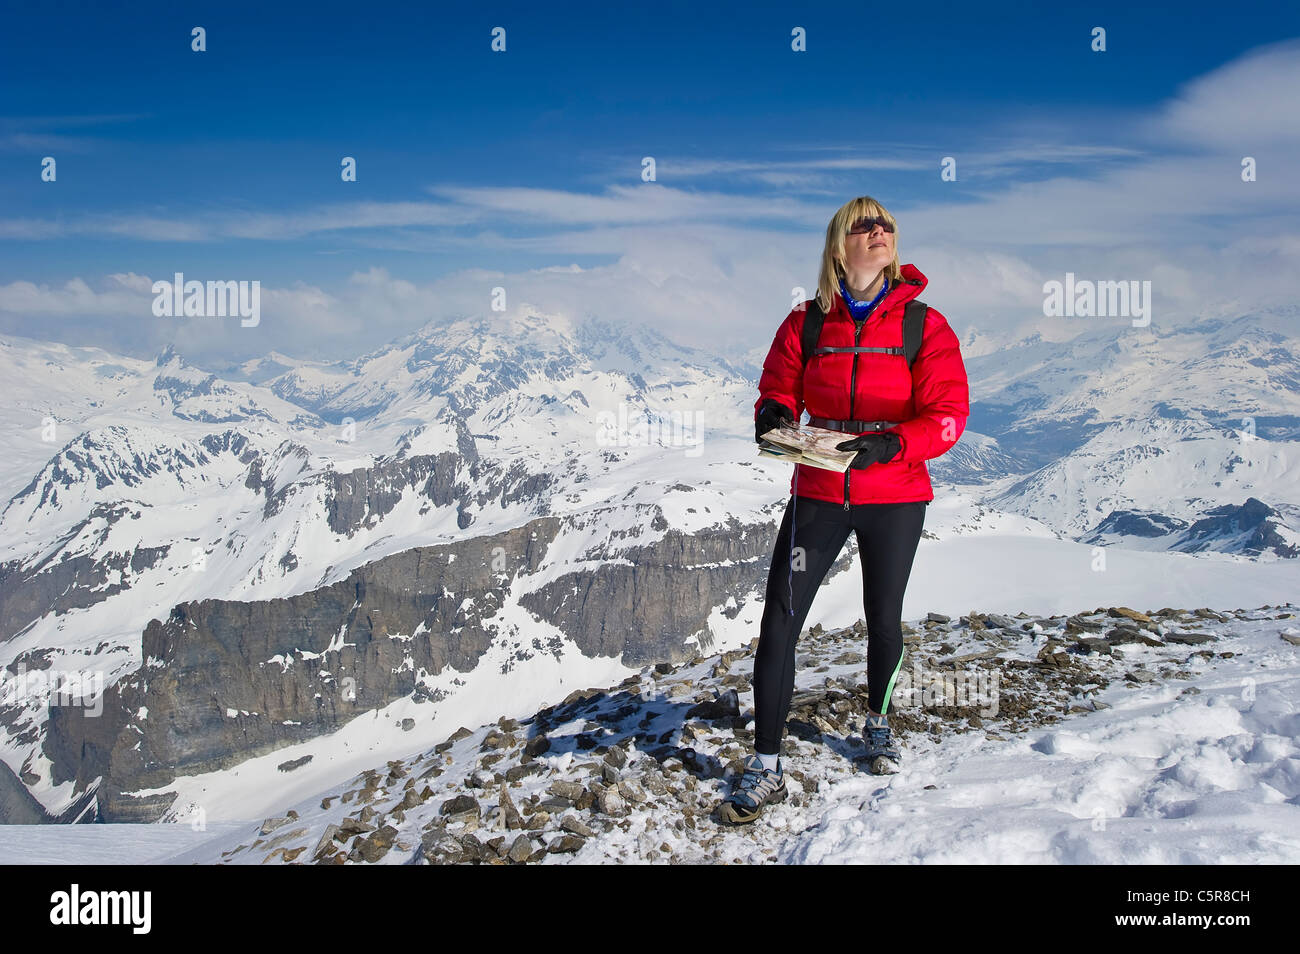 A women in high snowy mountains using a map and compass for orienteering. - Stock Image